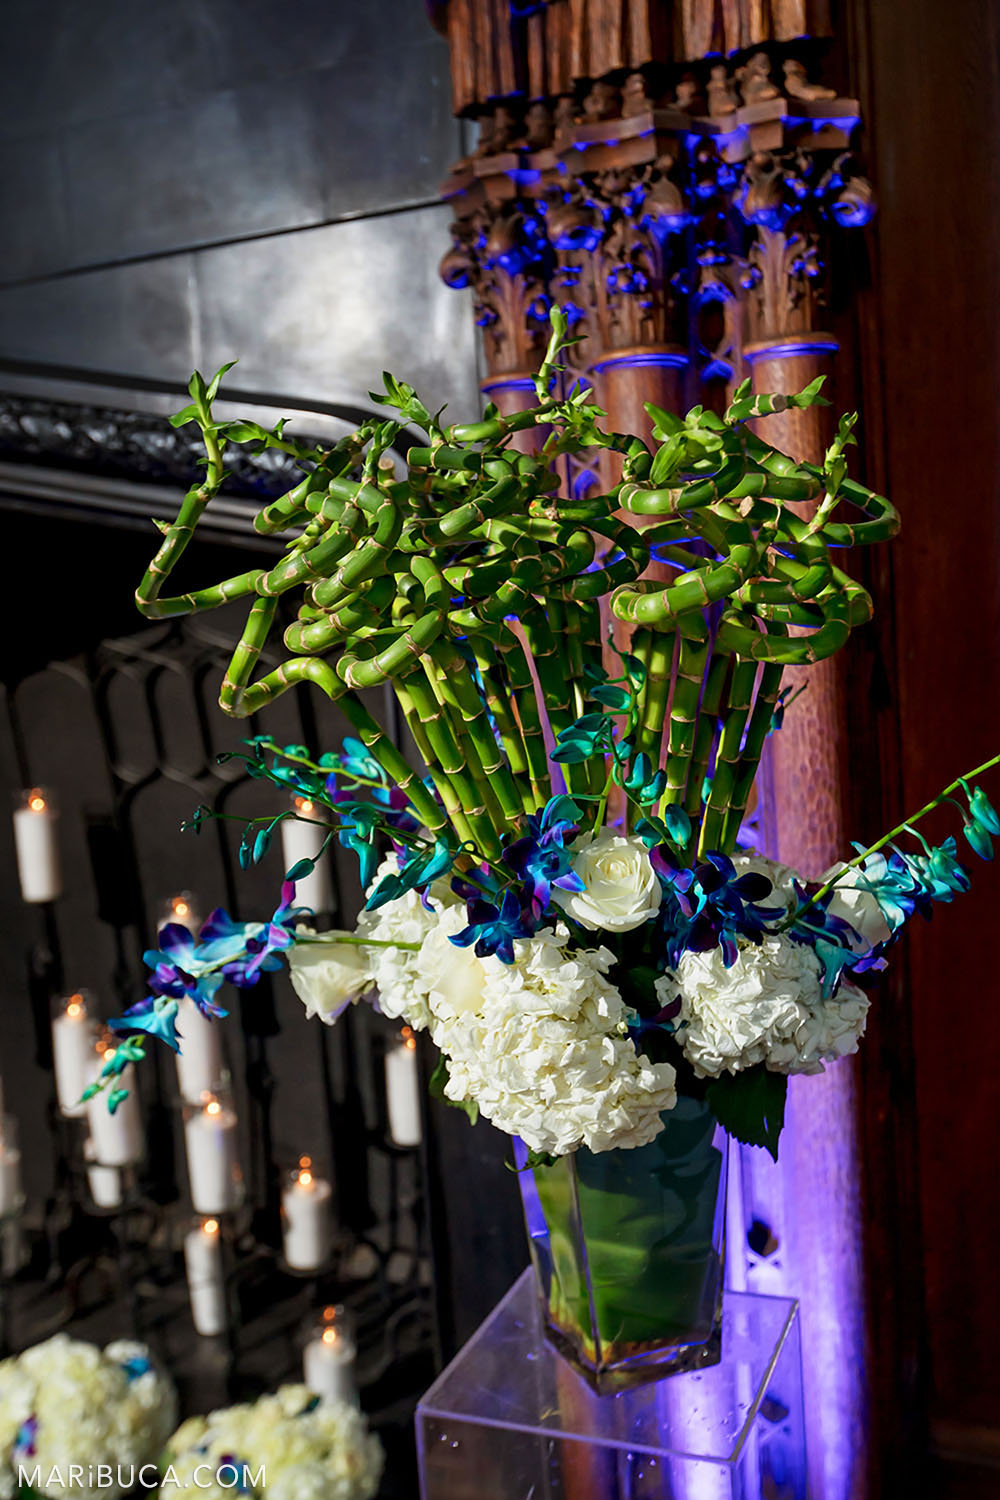 Wedding decoration: green grass bamboo, white flowers, lit candles and fireplace with purple light in the Great Hall, Kohl Mansion, Burlingame